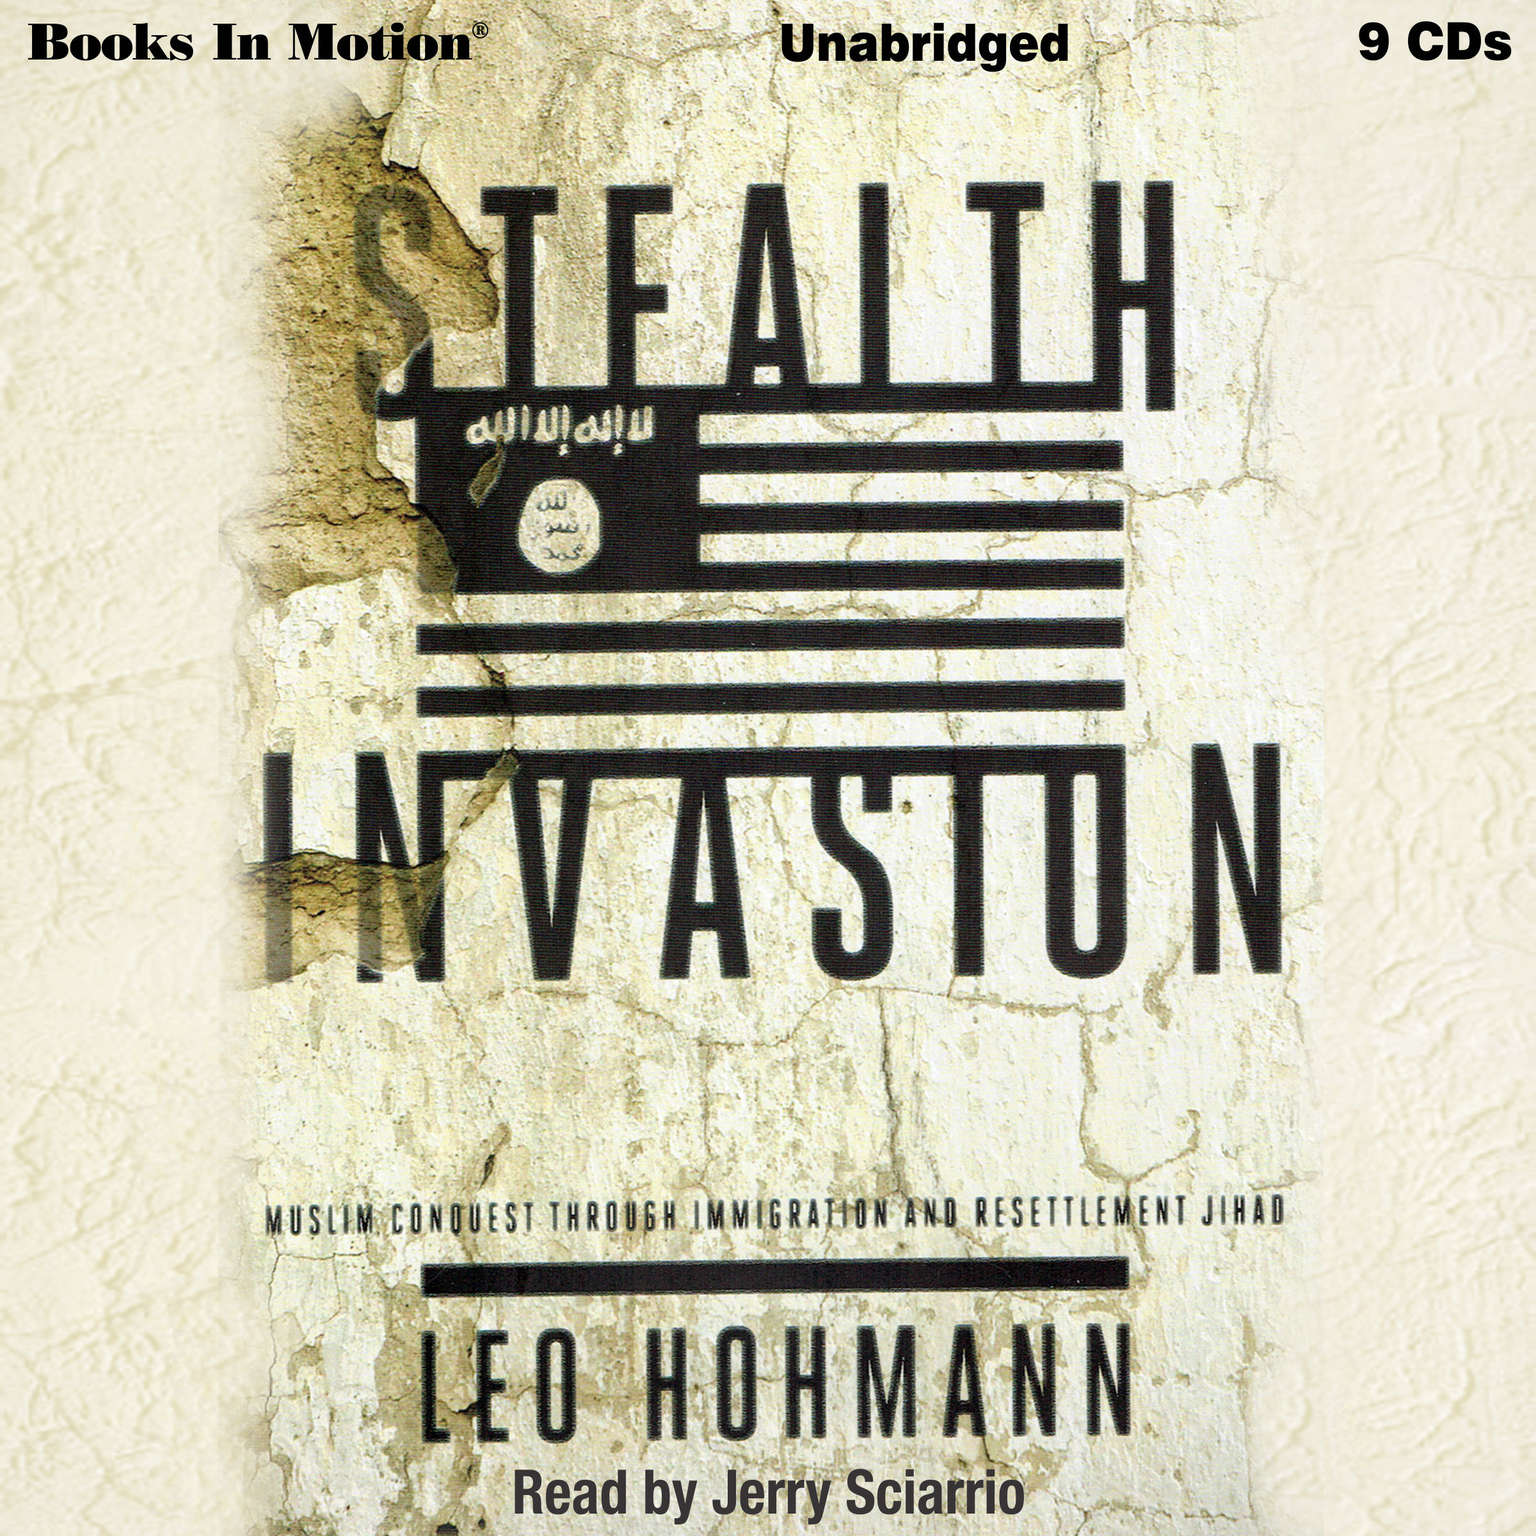 Stealth Invasion: Muslim Conquest Through Immigration & Resettlement Jihad Audiobook, by Leo Hohmann